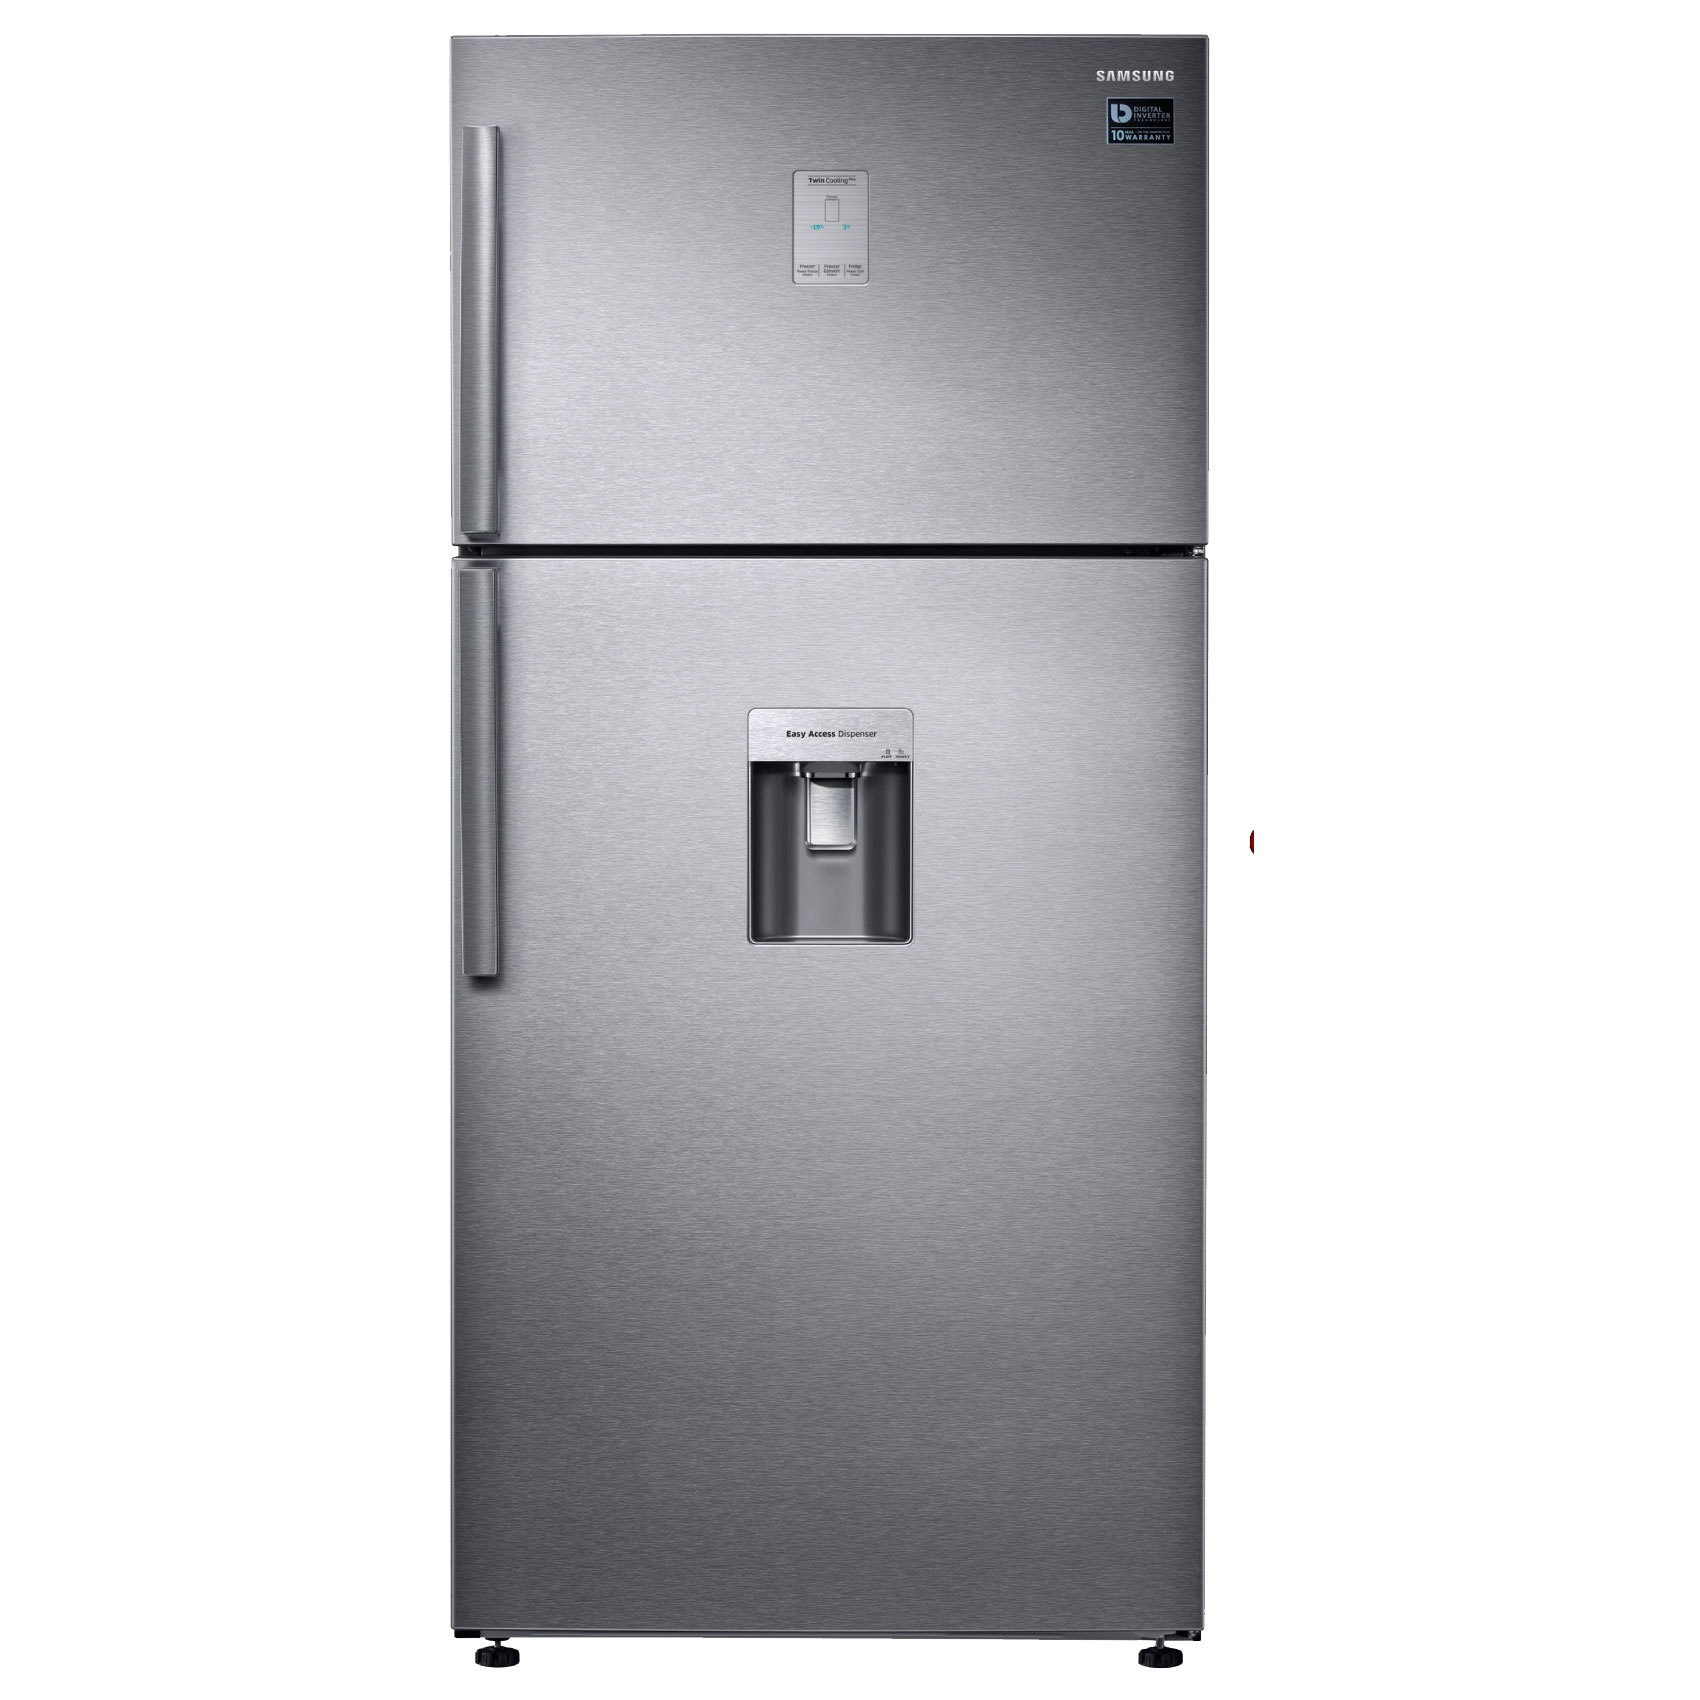 Le Meilleur Buy Samsung 750 Liter Fridge Rt75K6540Sl Online In Uae Ce Mois Ci